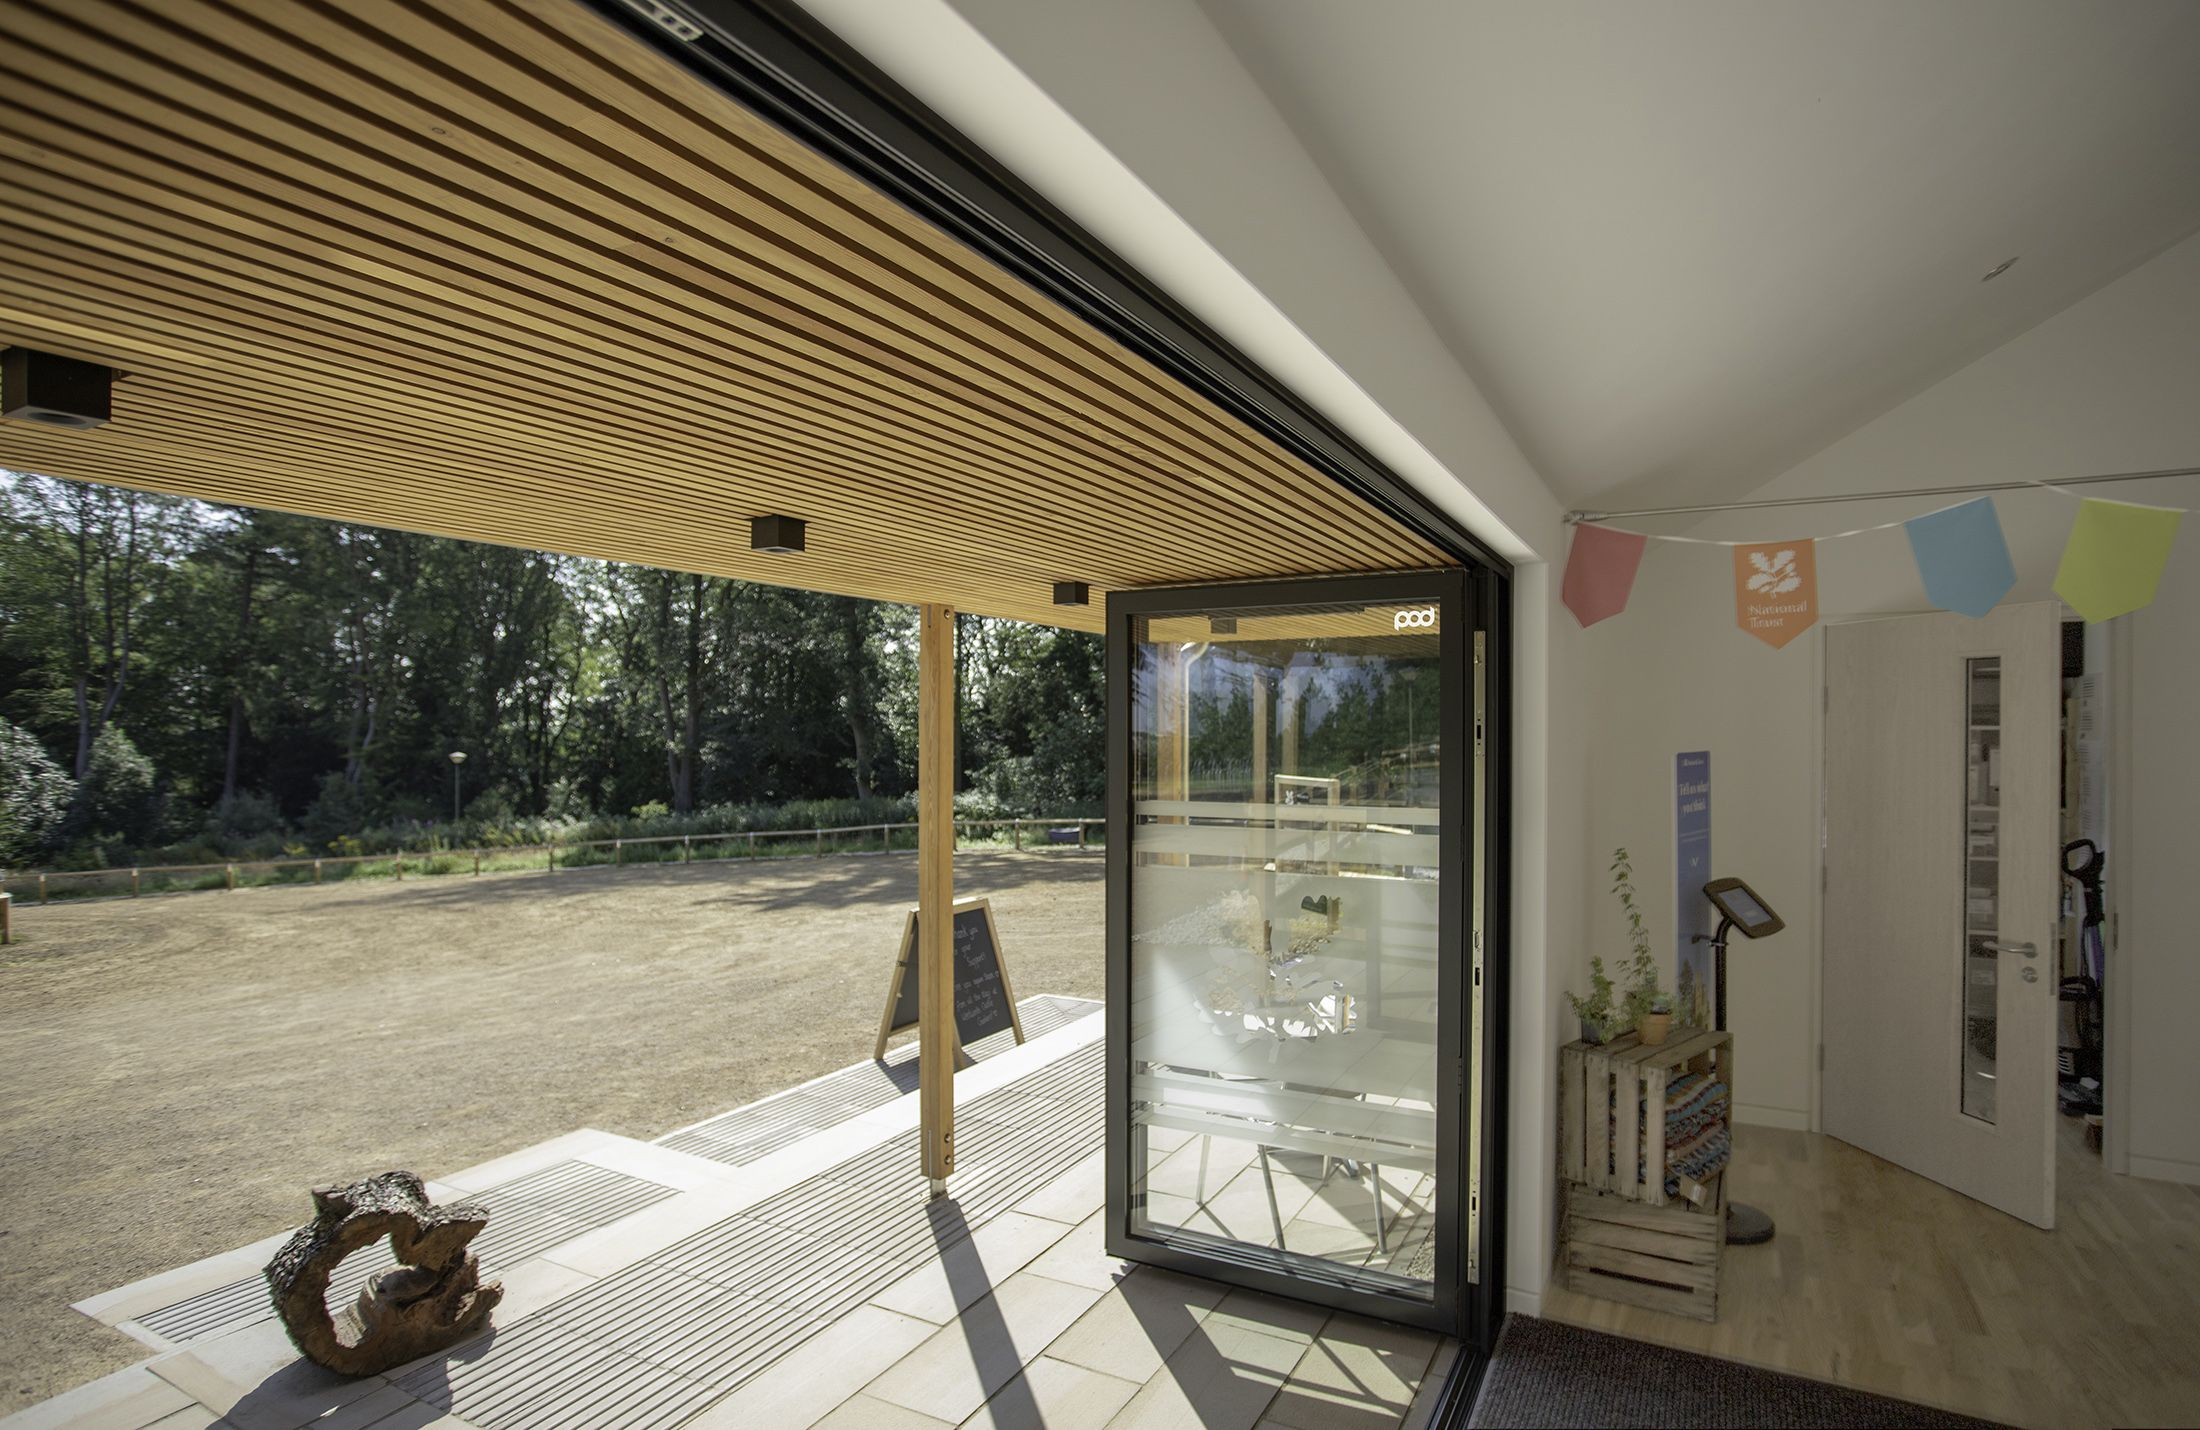 Pin by Pod Space on National Trust Projects (With images